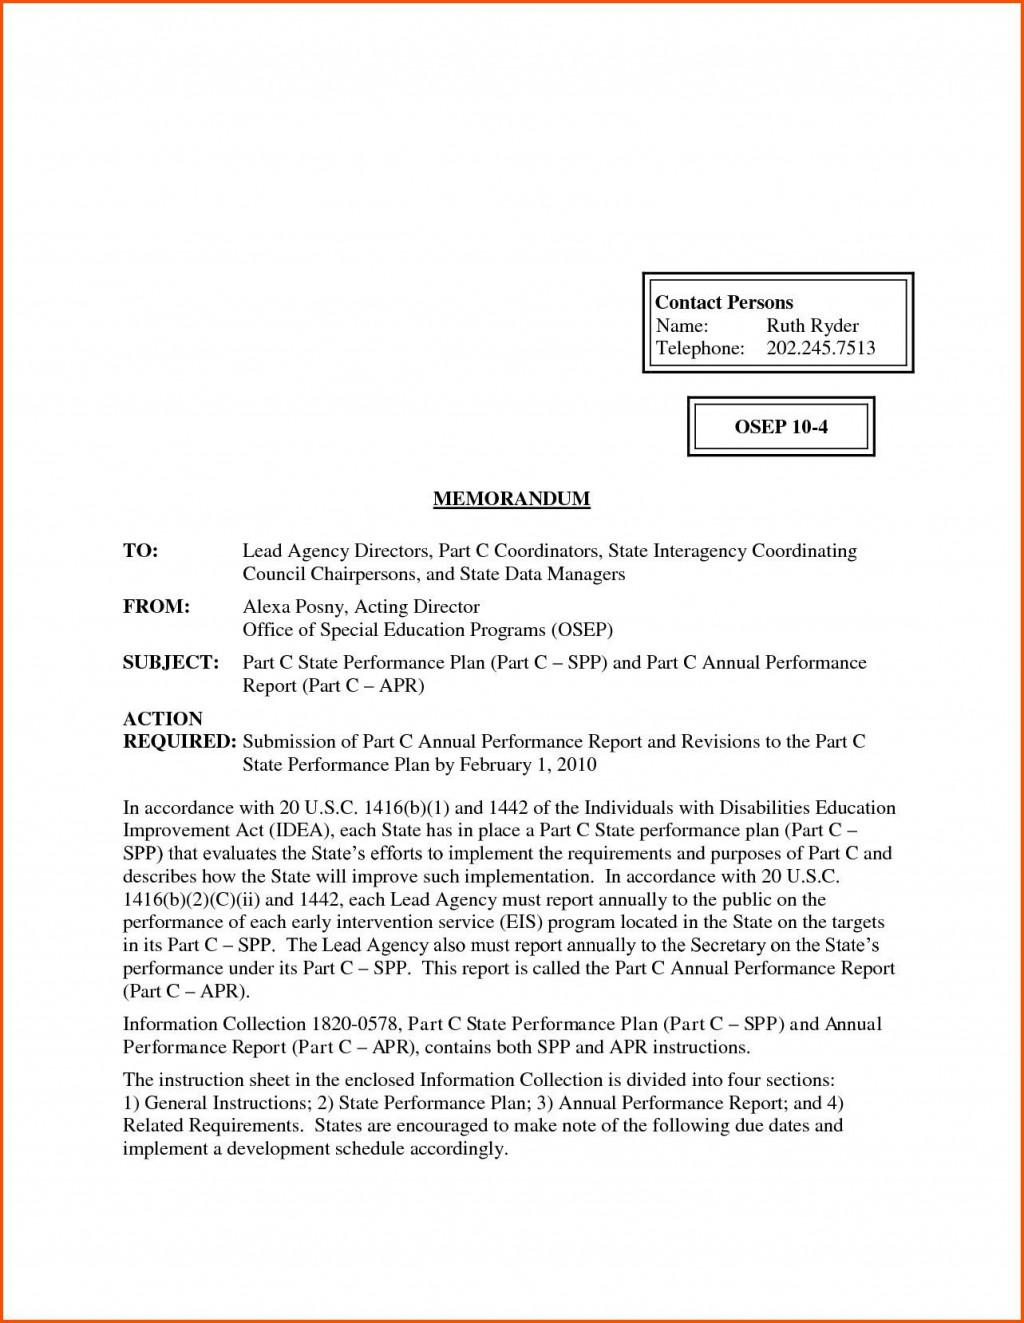 002 Fascinating Microsoft Office Word 2010 Memo Template Highest Quality Large